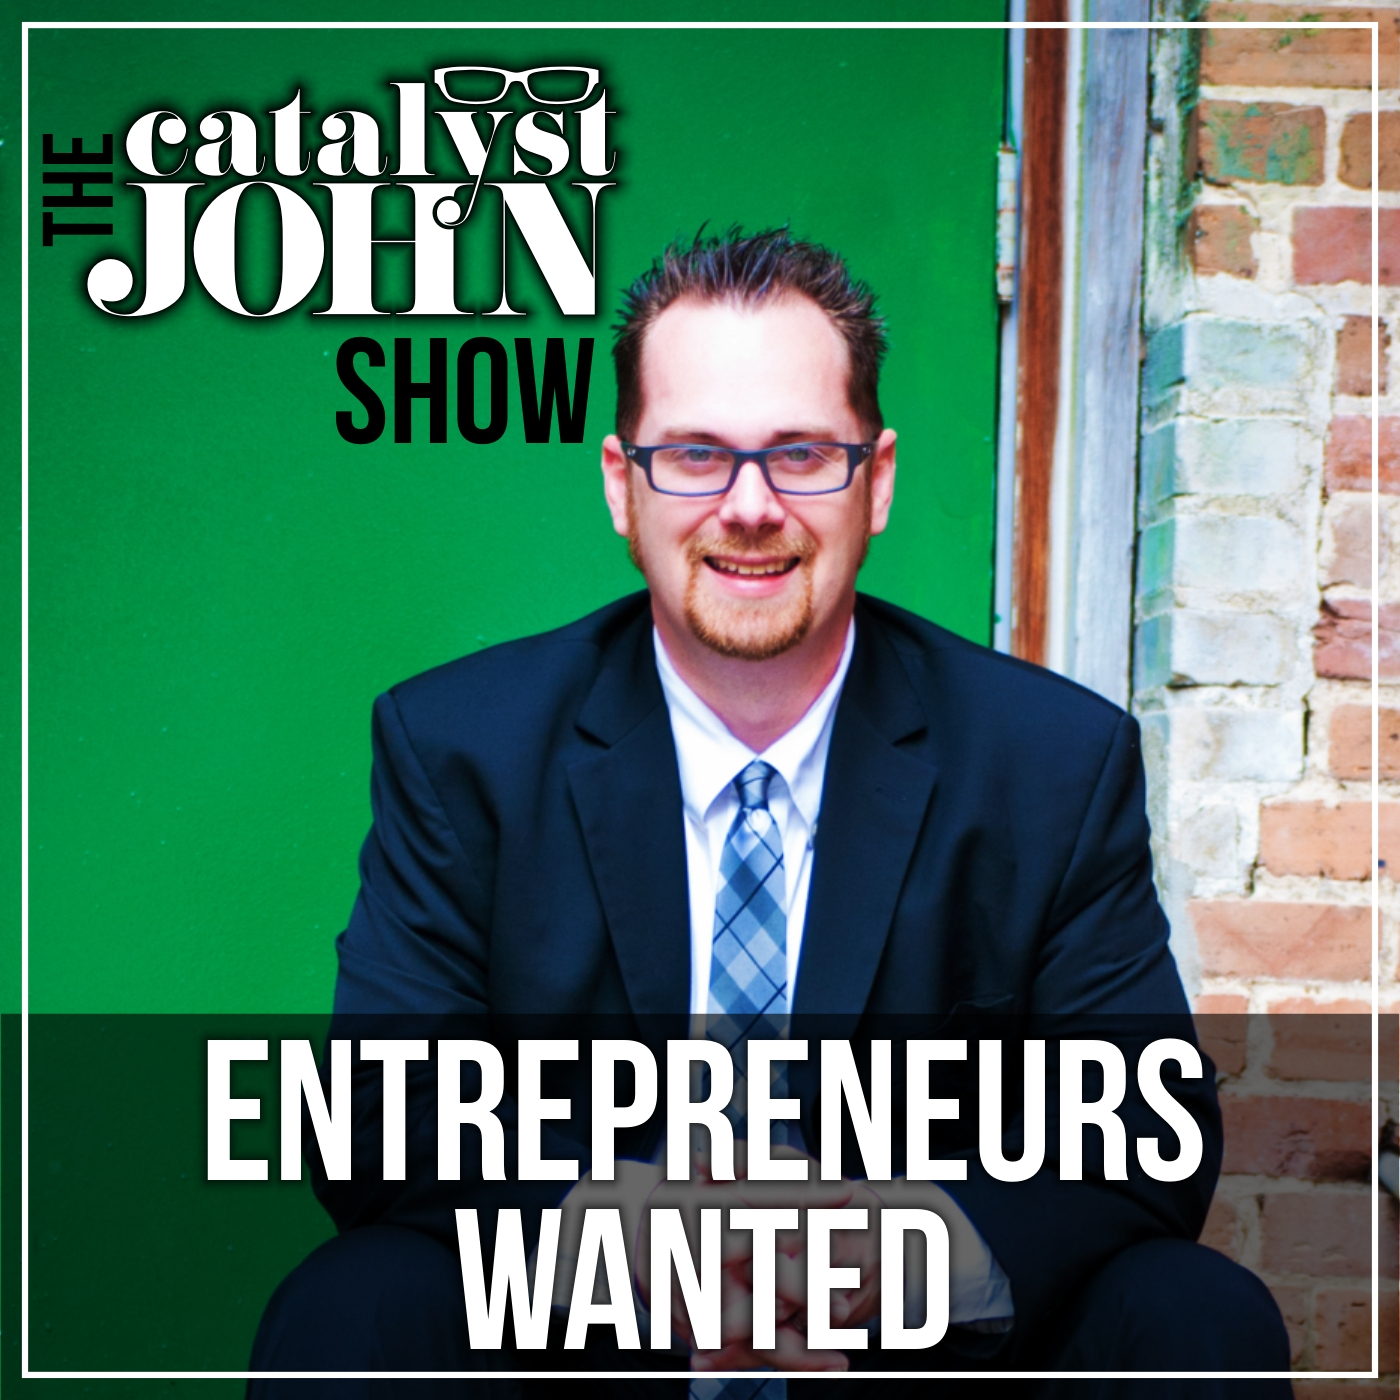 The Catalyst John Show: Entrepreneurs Wanted.